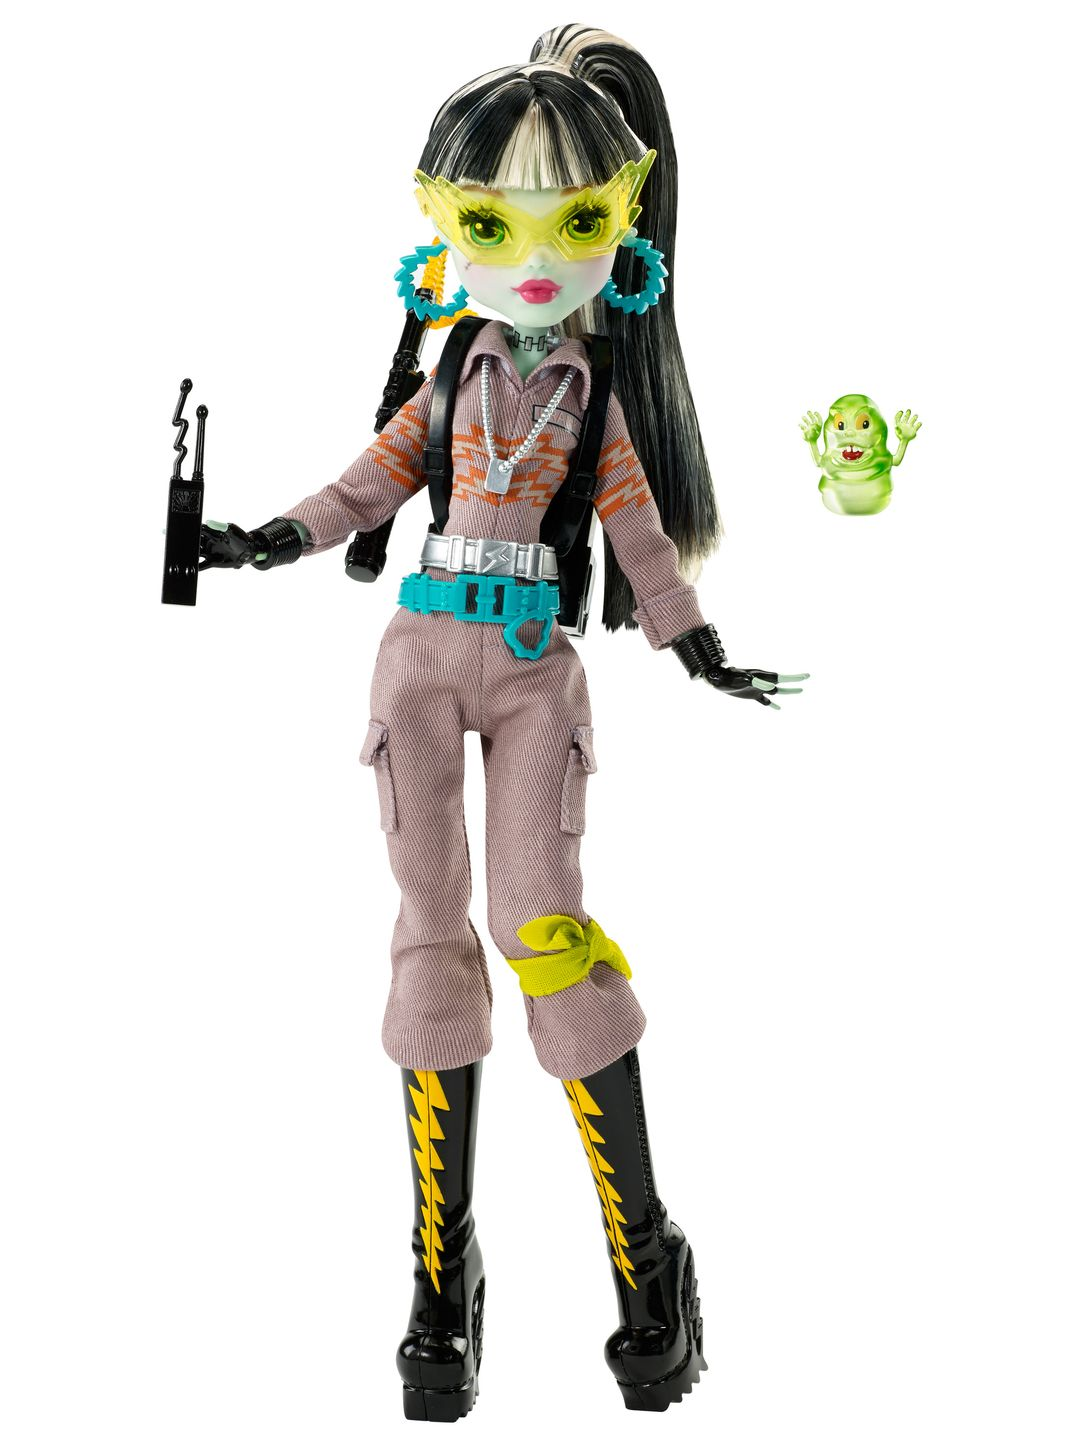 Mattel San Diego Comic Con 2016 Exclusives Revealed The